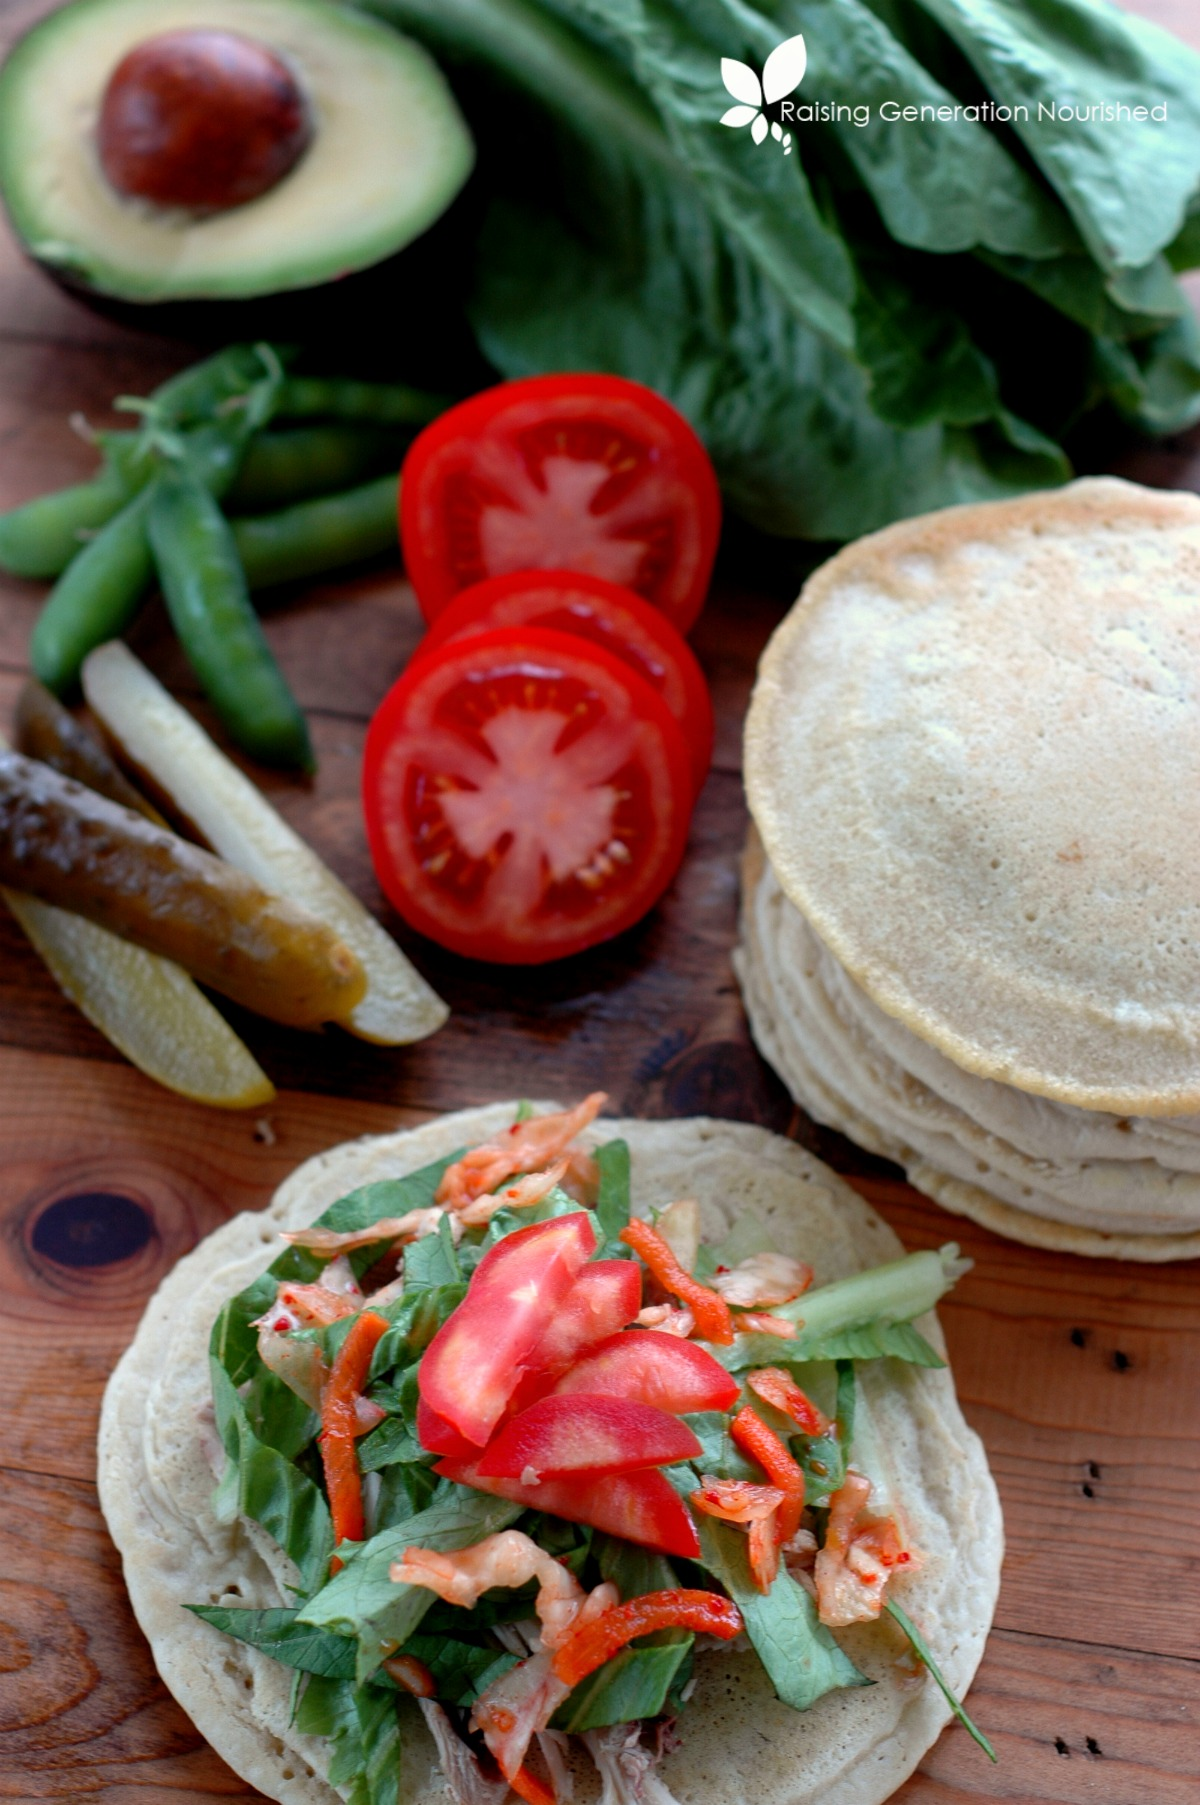 Gluten Free Pita Bread :: Flexible & soft, yet sturdy enough to stuff with your favorite ingredients! This pita tastes just like bread without gluten or xanthan gum!